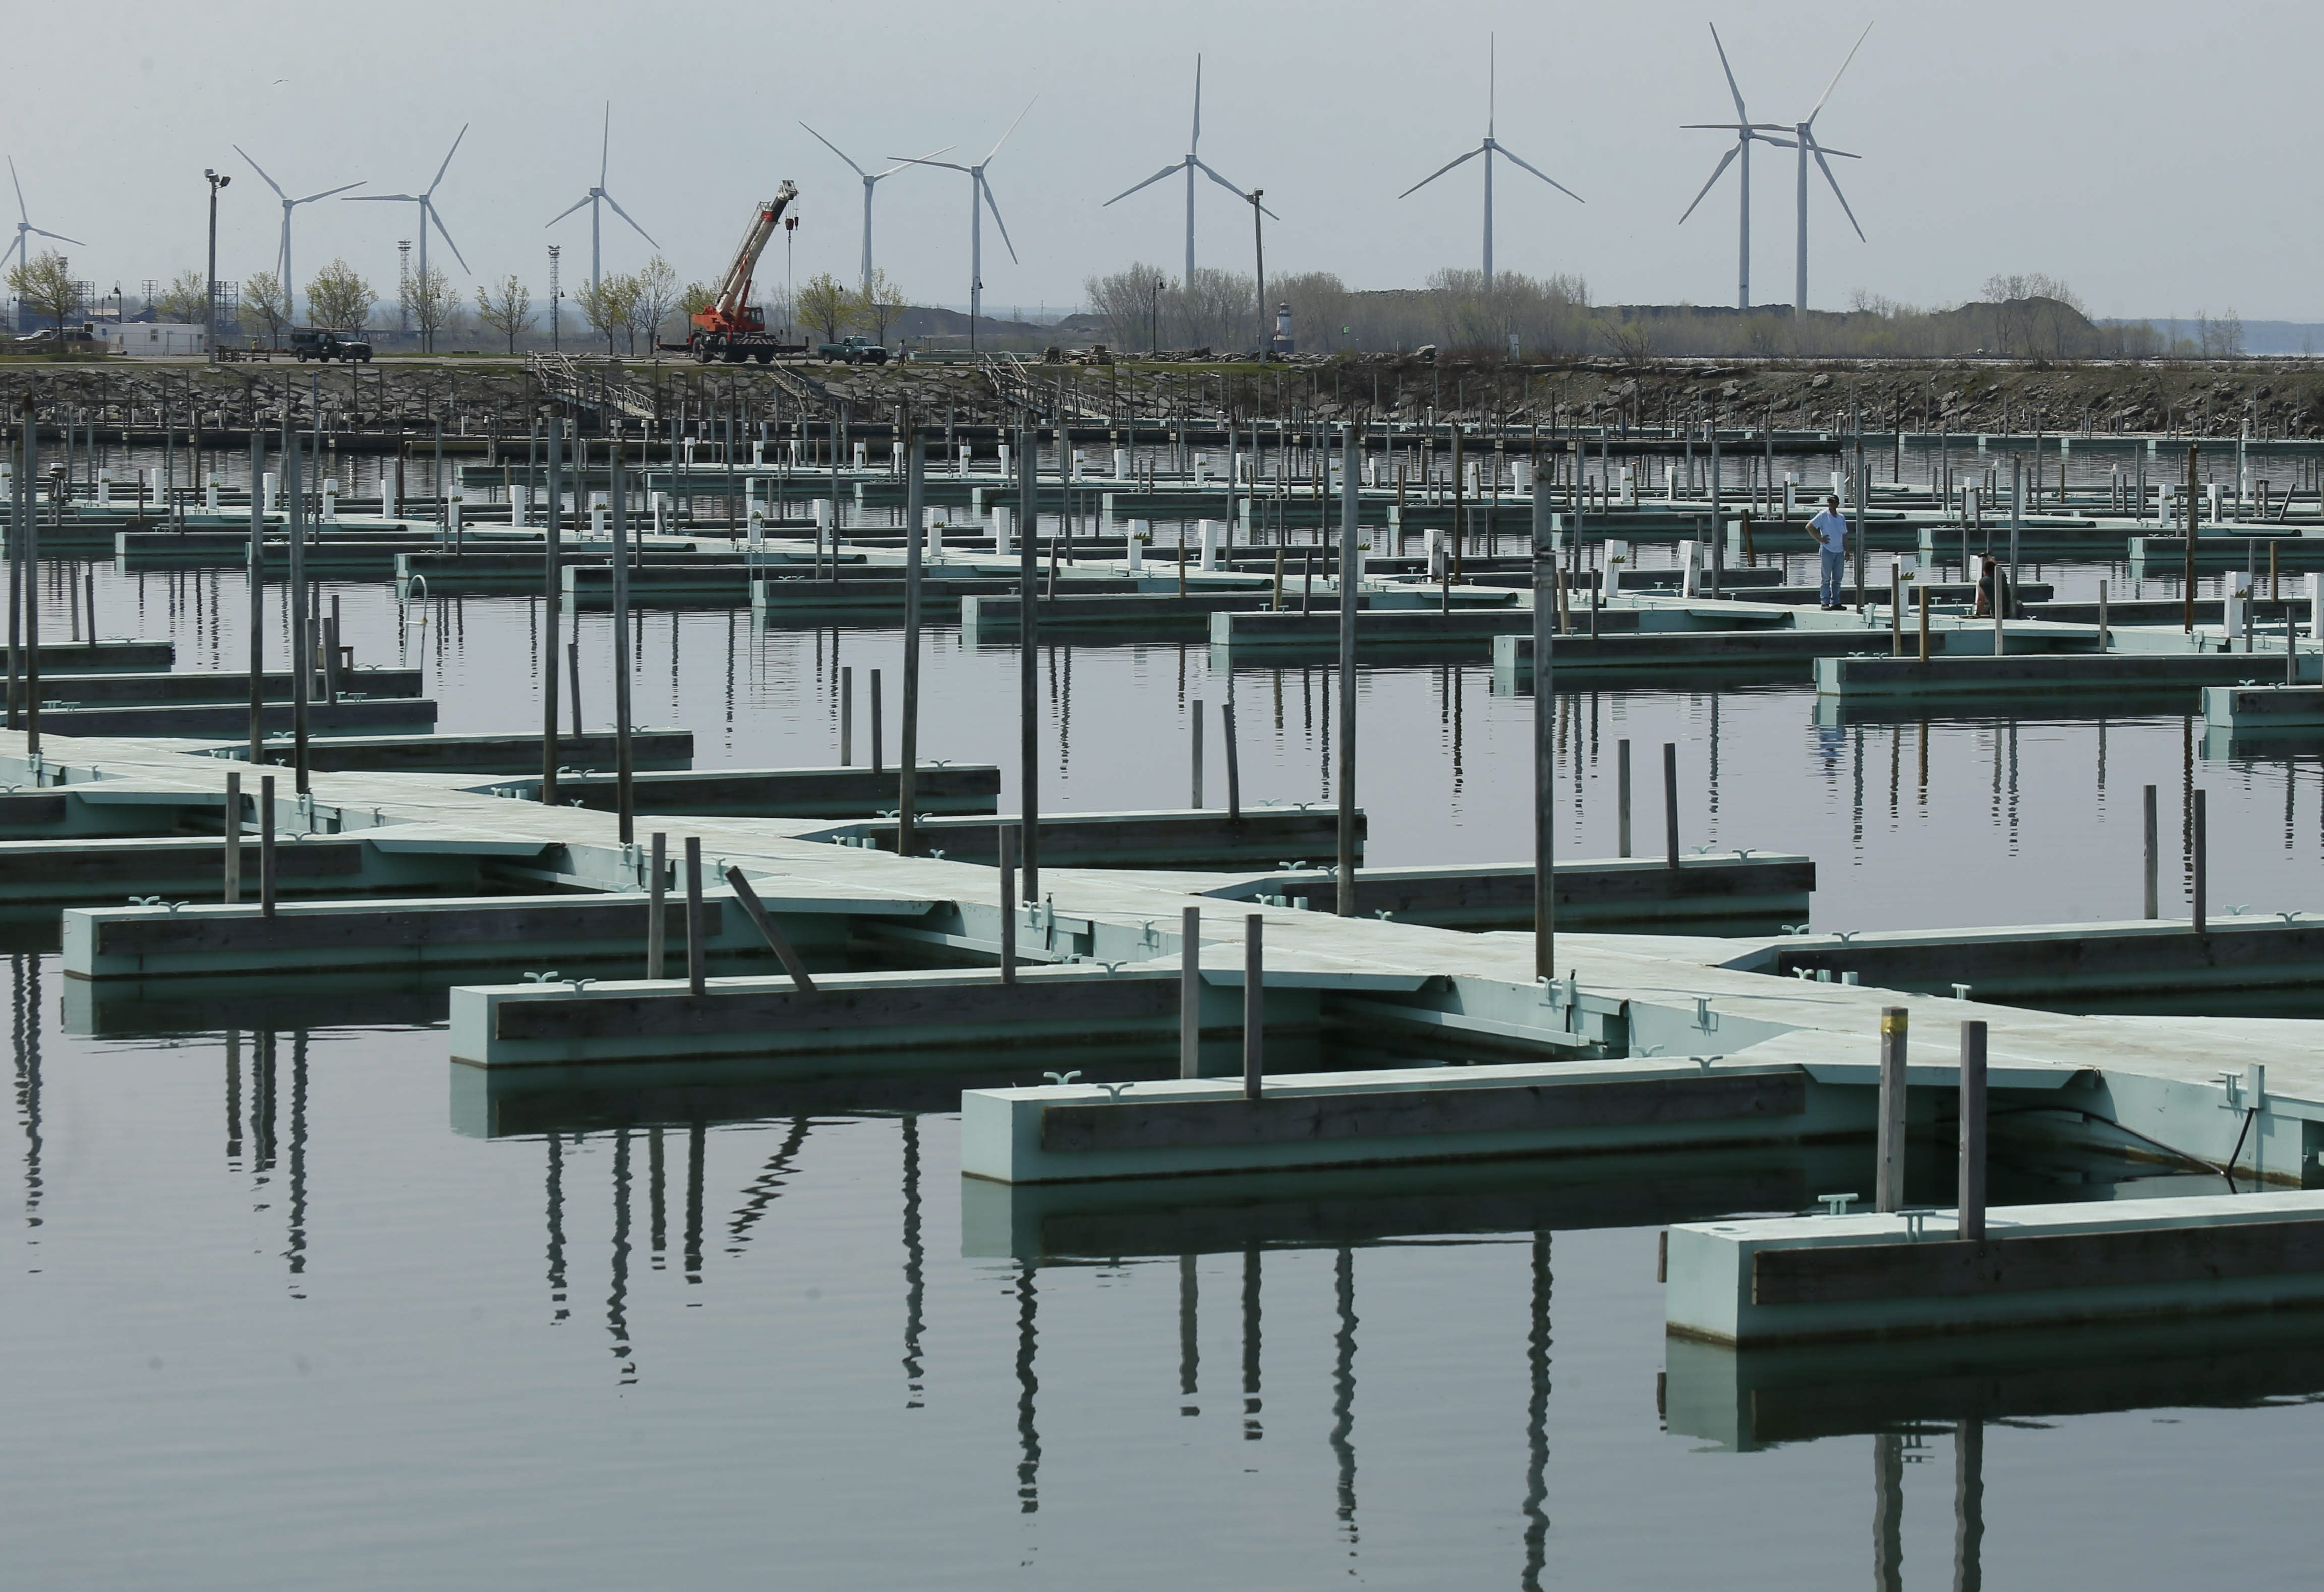 The docks are empty as workers complete their installation at the Small Boat Harbor, Friday, May 8, 2015.  (Derek Gee/Buffalo News)